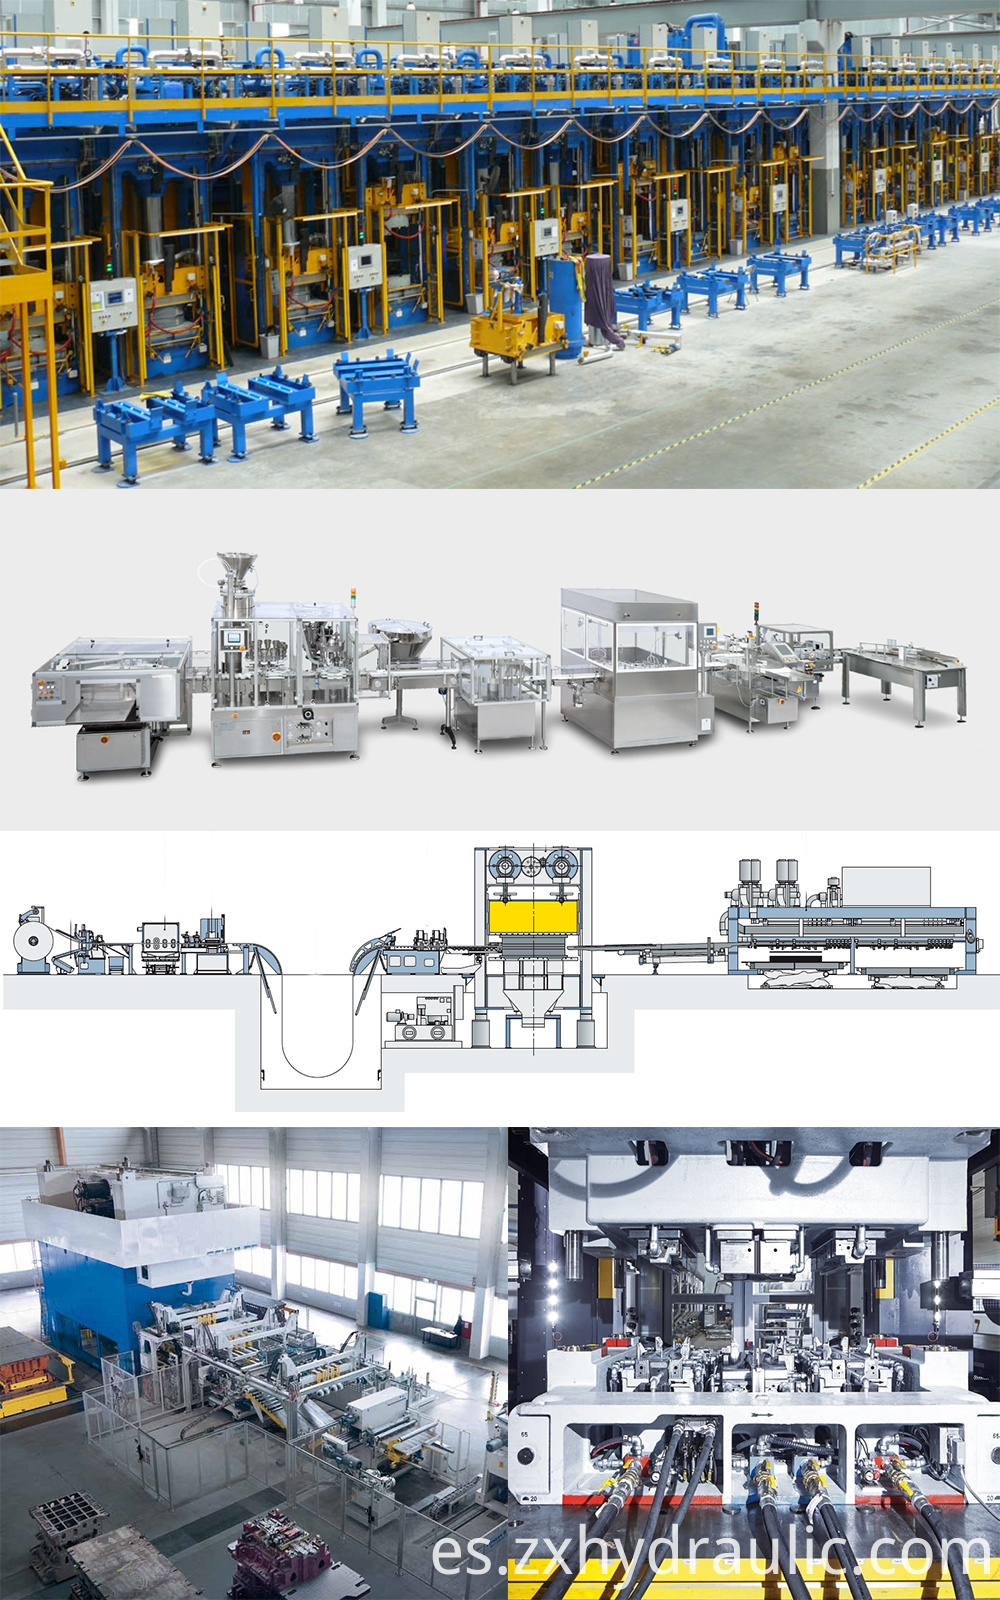 hydraulic press machine production line